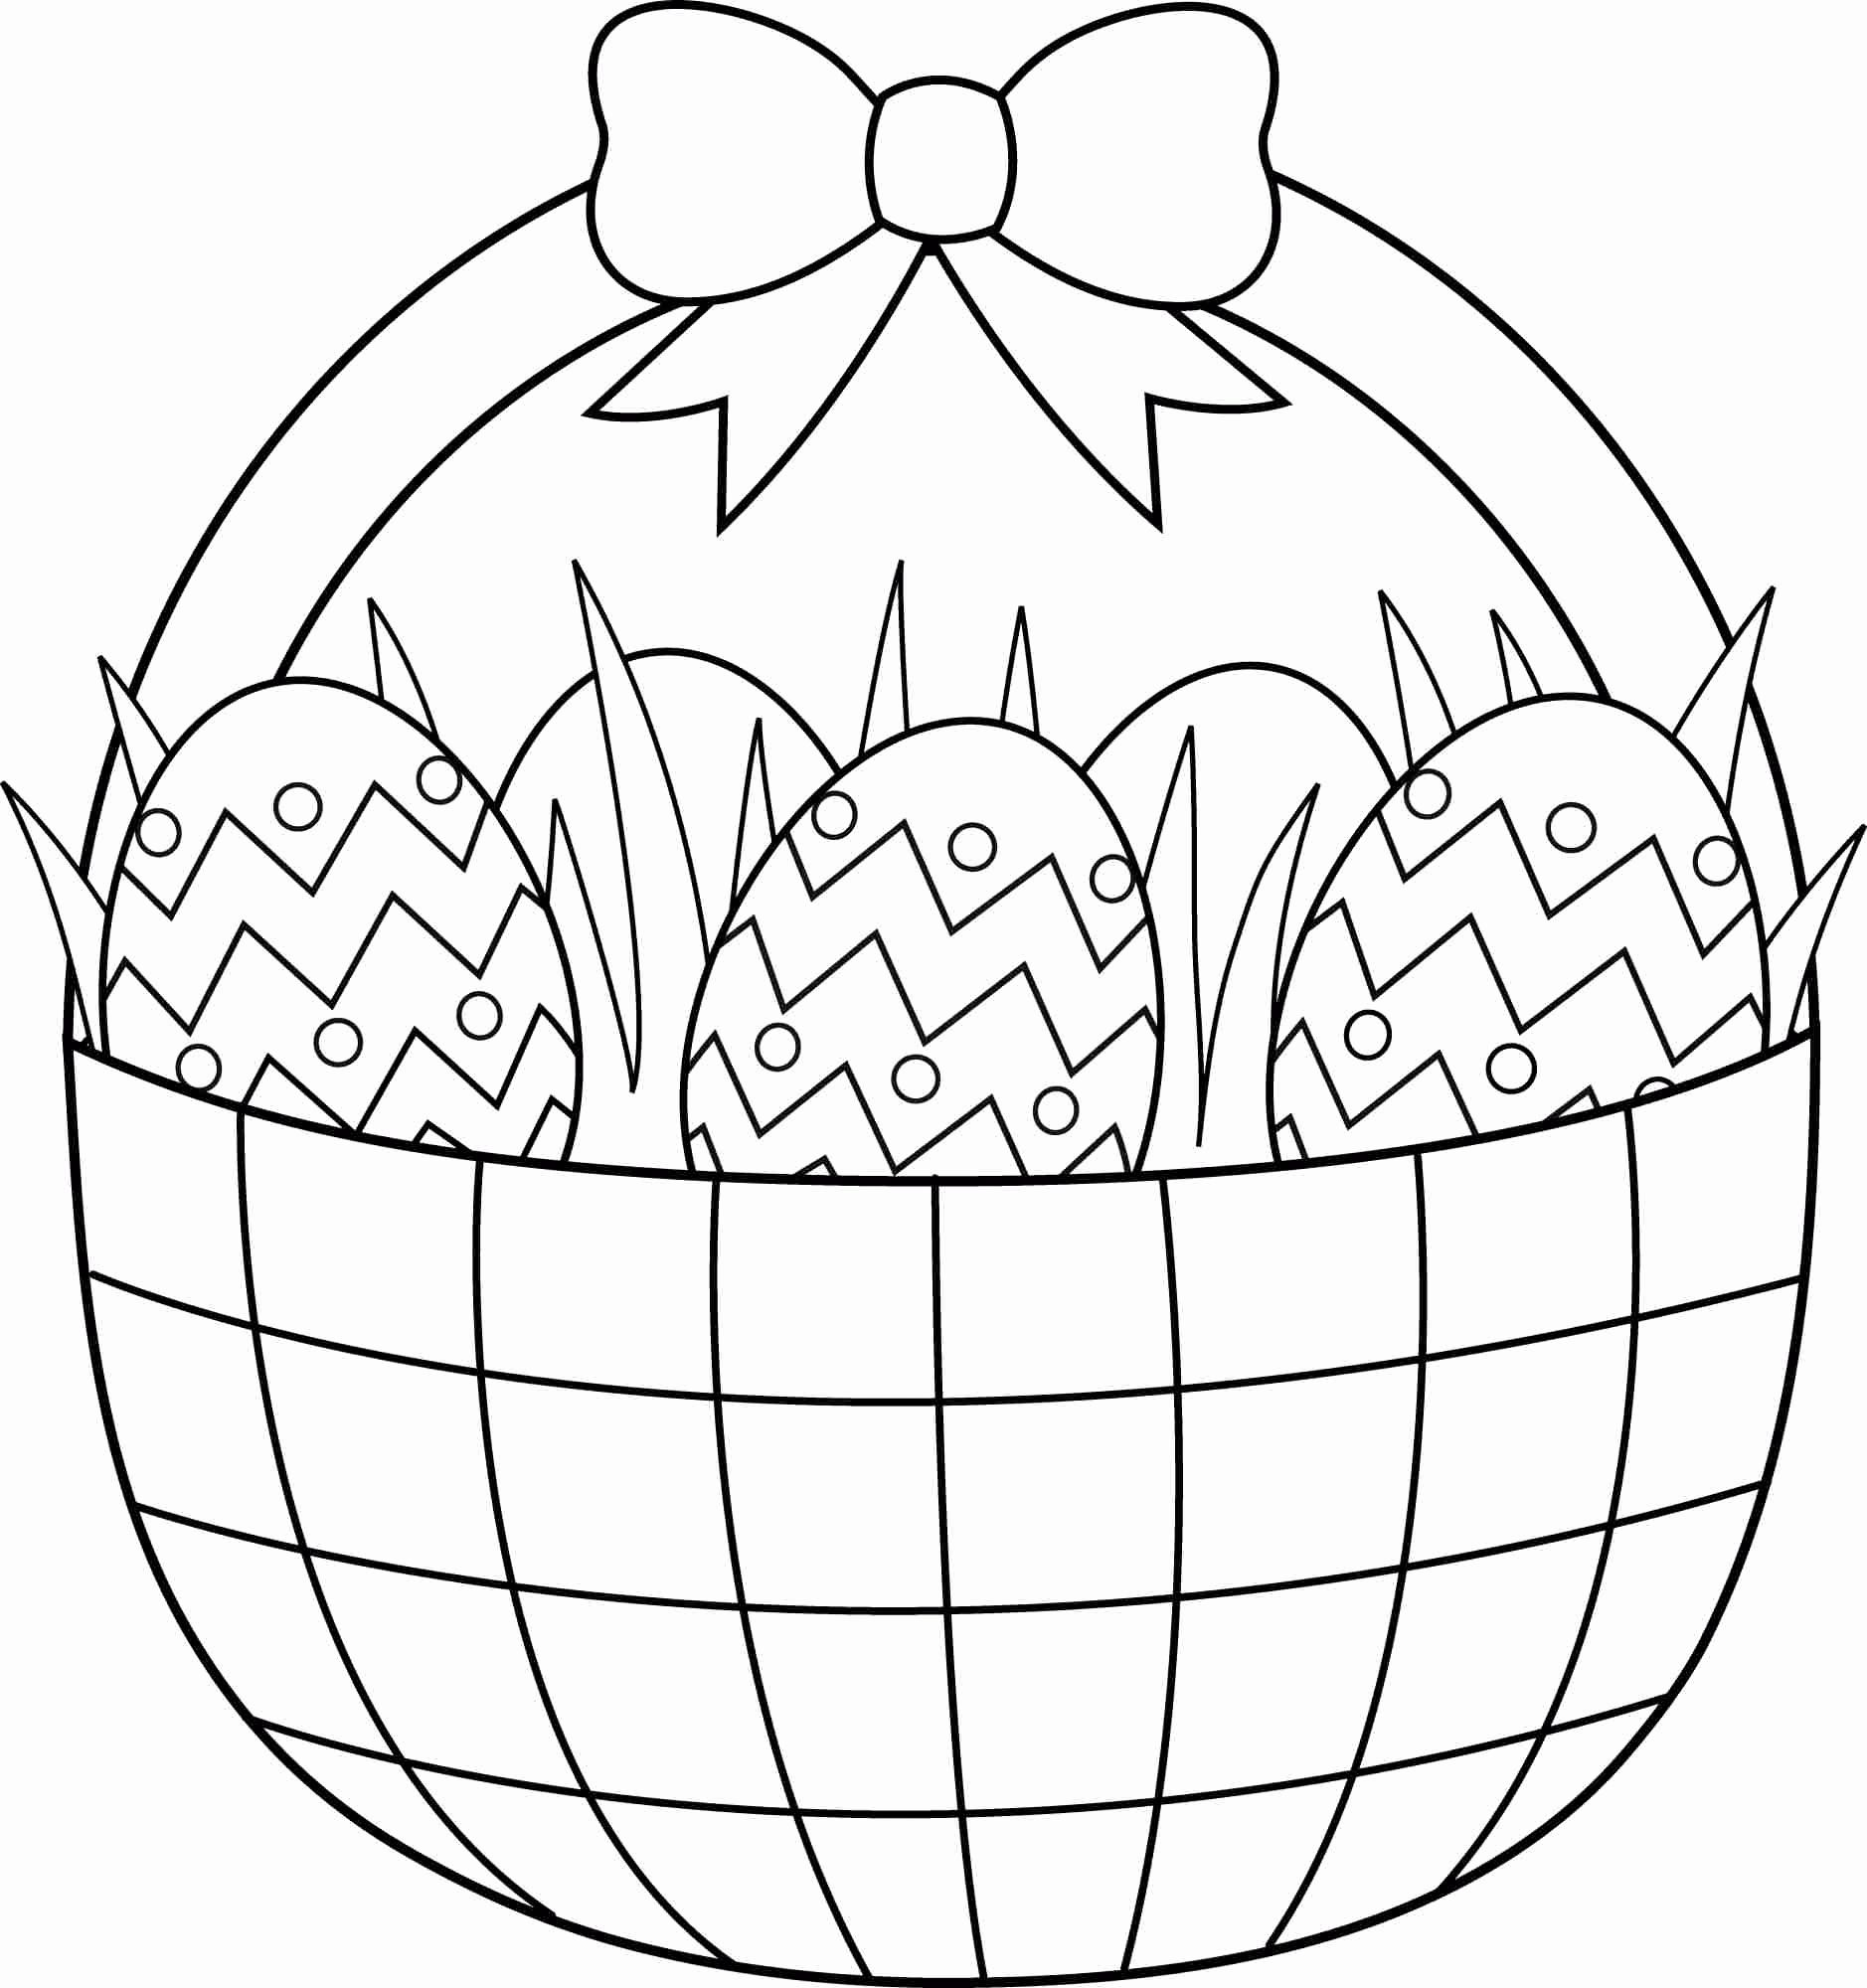 Spring Coloring Pages Pdf In 2020 Easter Coloring Pages Printable Free Easter Coloring Pages Easter Egg Coloring Pages